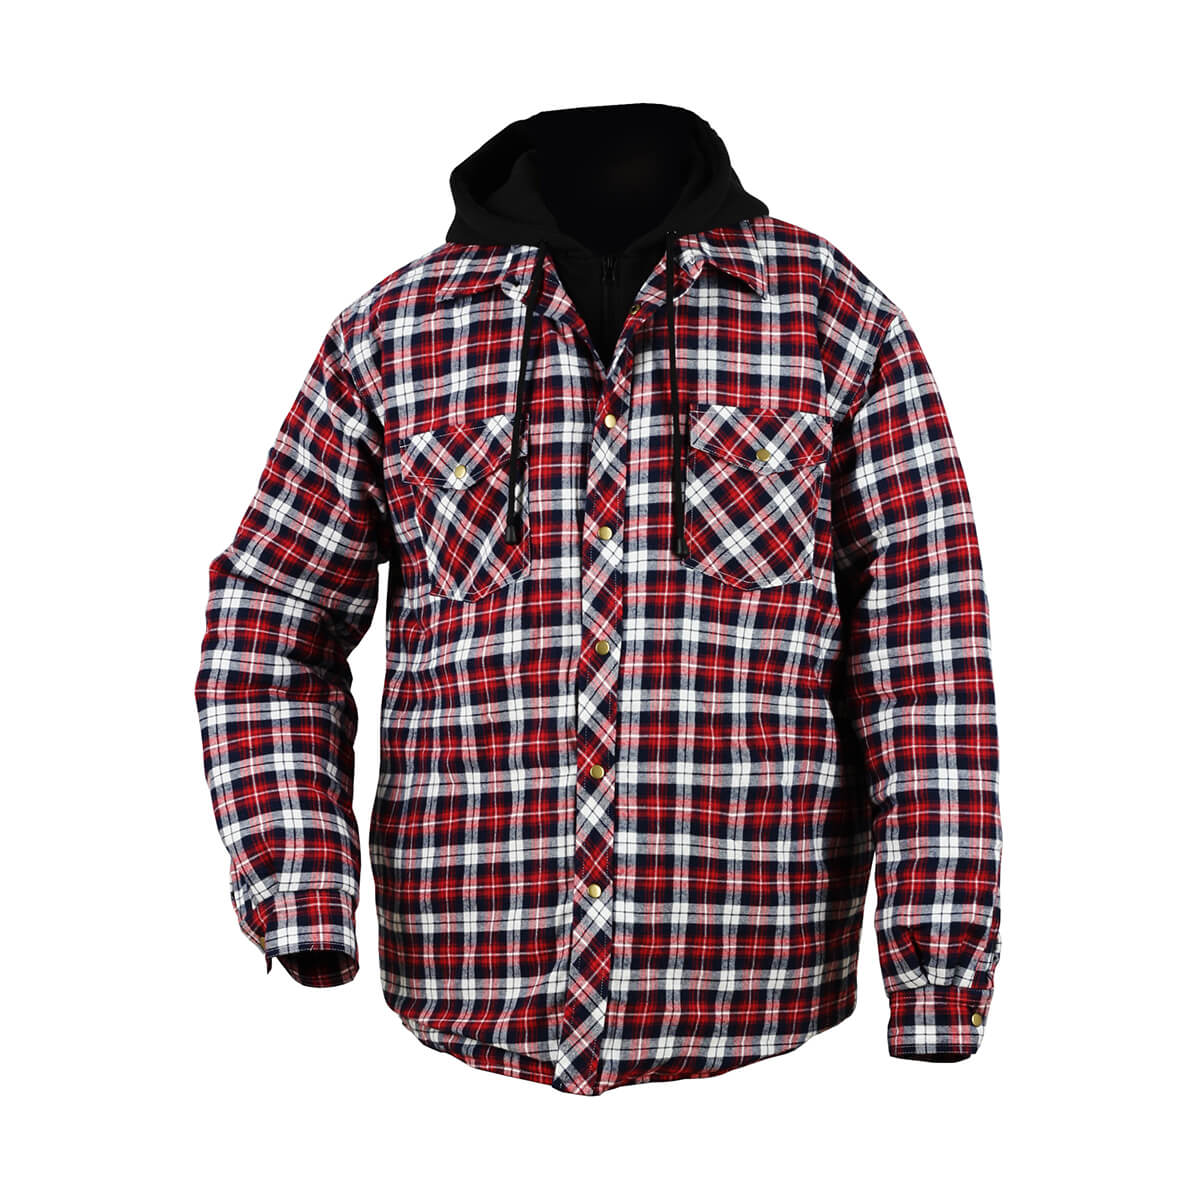 Women's Hooded Quilted Flannel